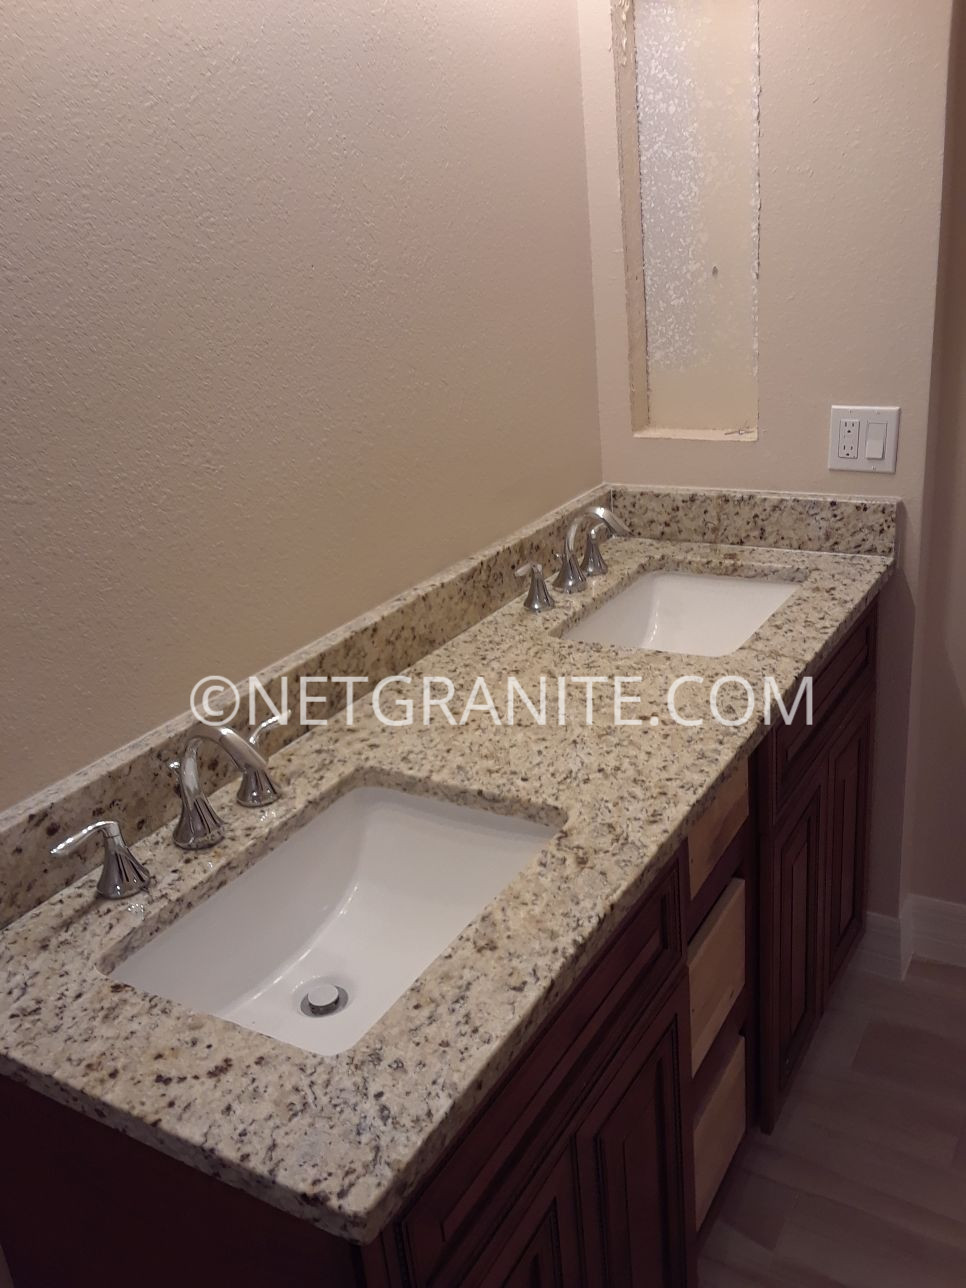 Merveilleux Granite Bathroom Counter